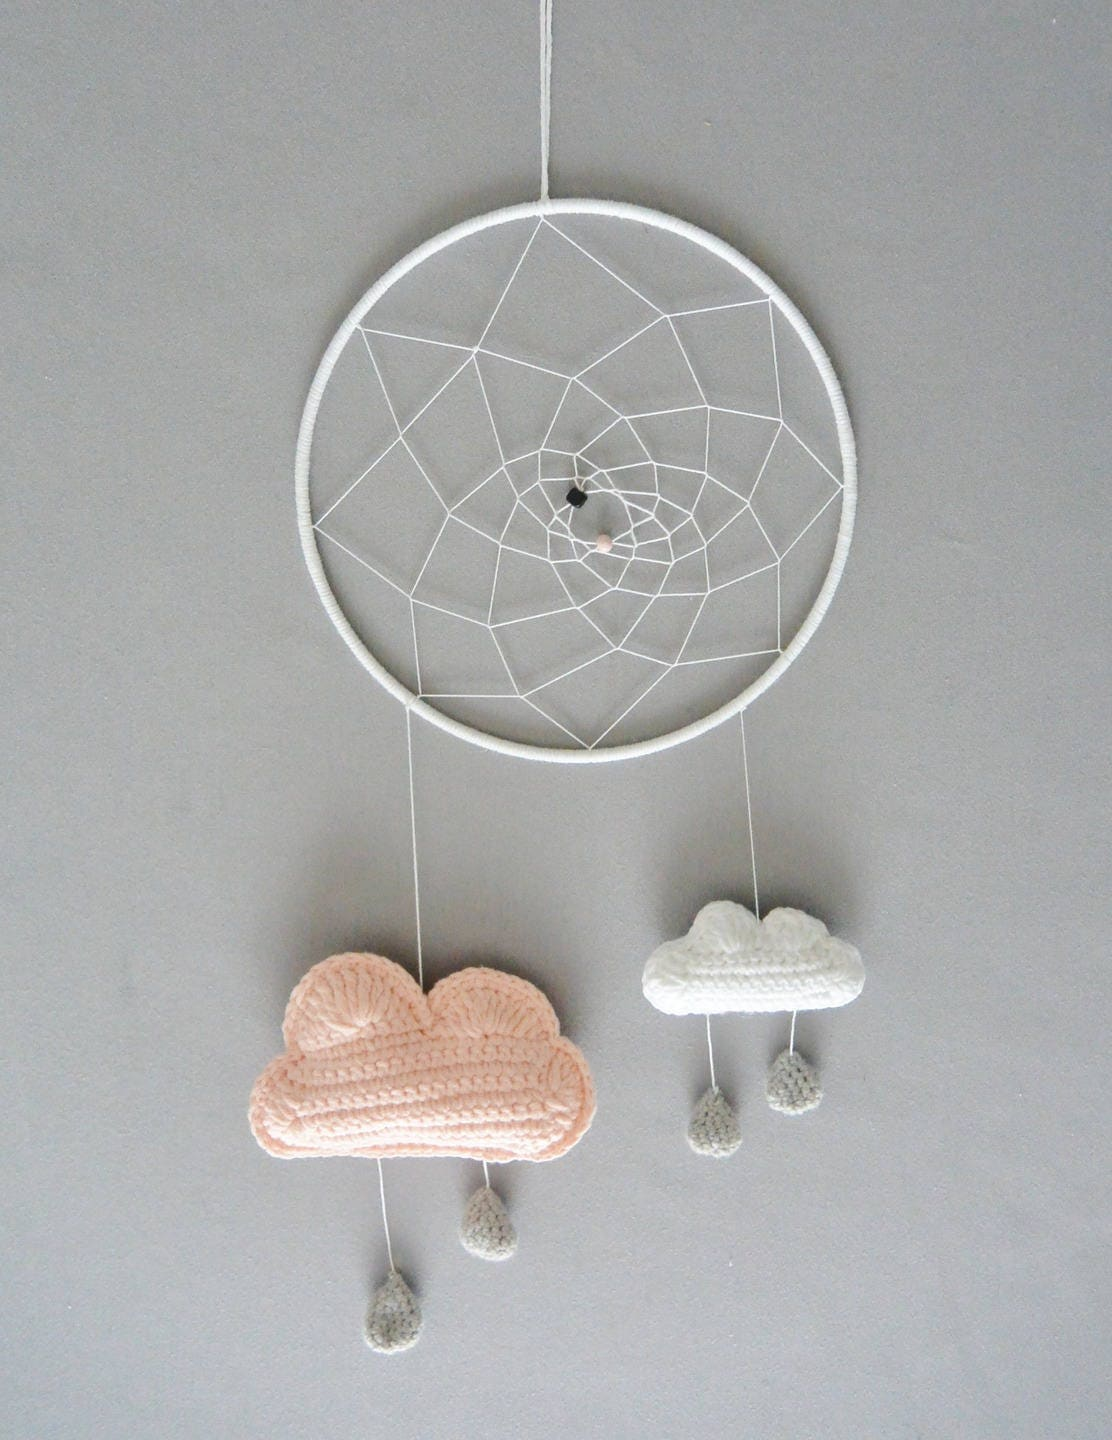 Attrape r ve mobile nuage au crochet fait main - Attrape reve crochet ...